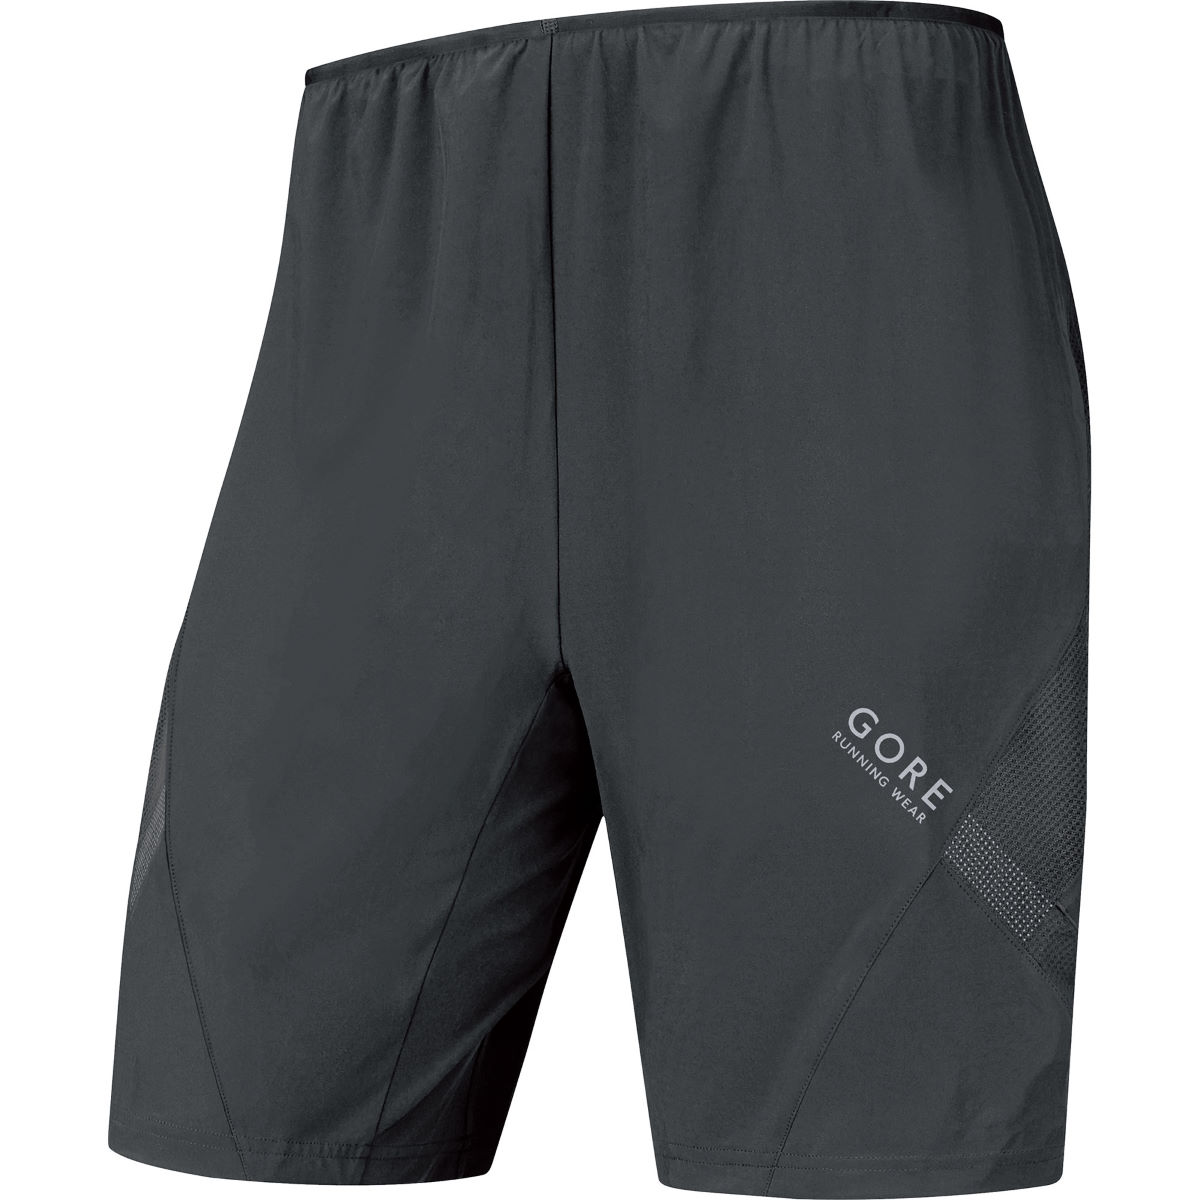 Short Gore Running Wear Air (2 en 1) - M black Shorts